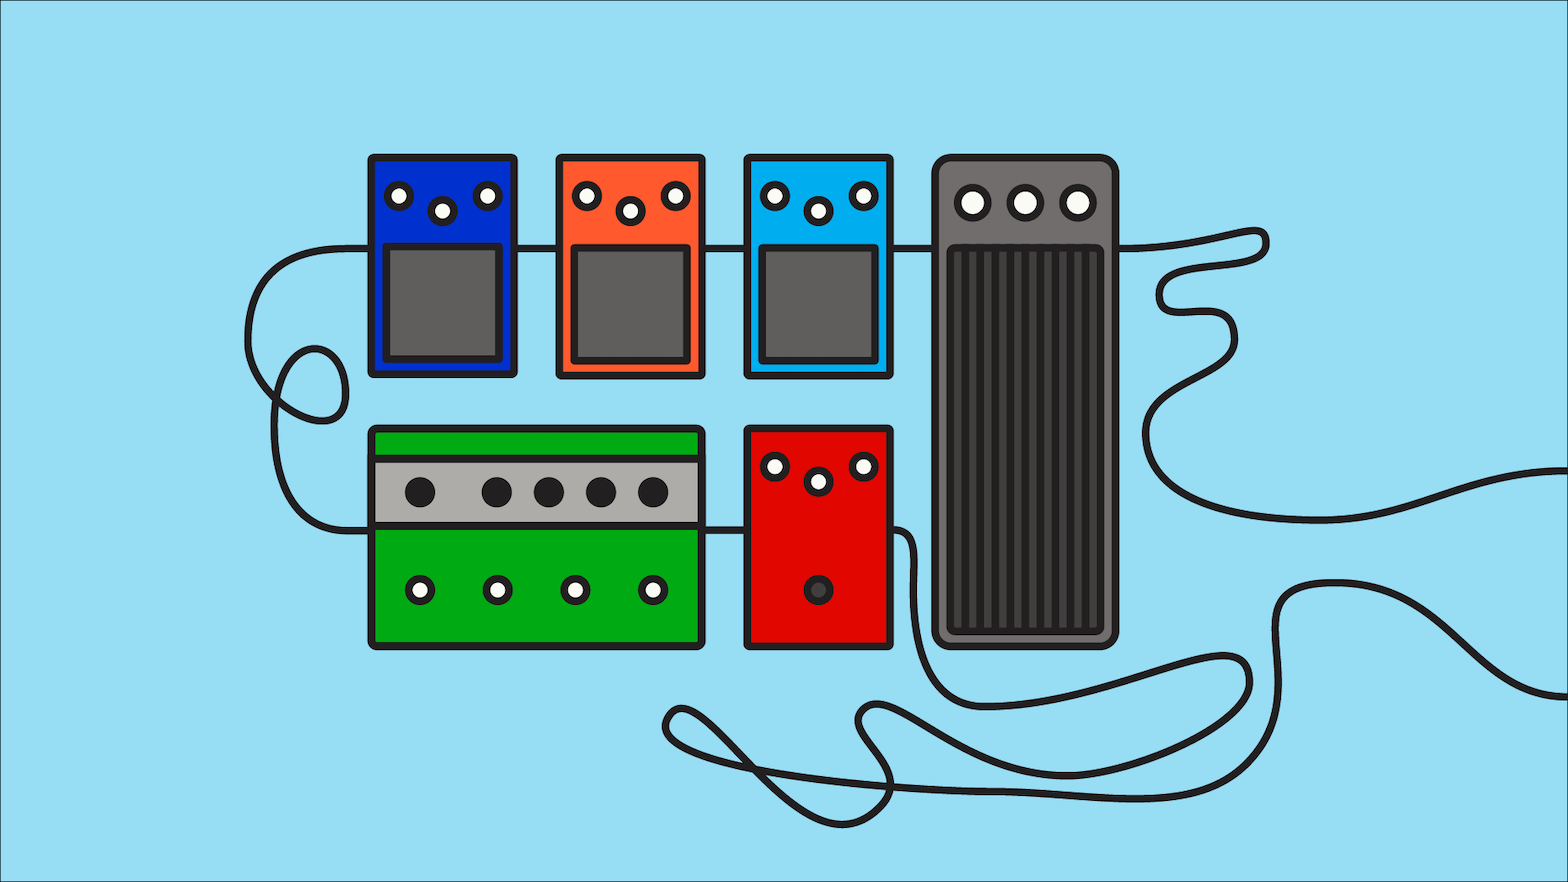 A series of guitar pedals connected with a cable